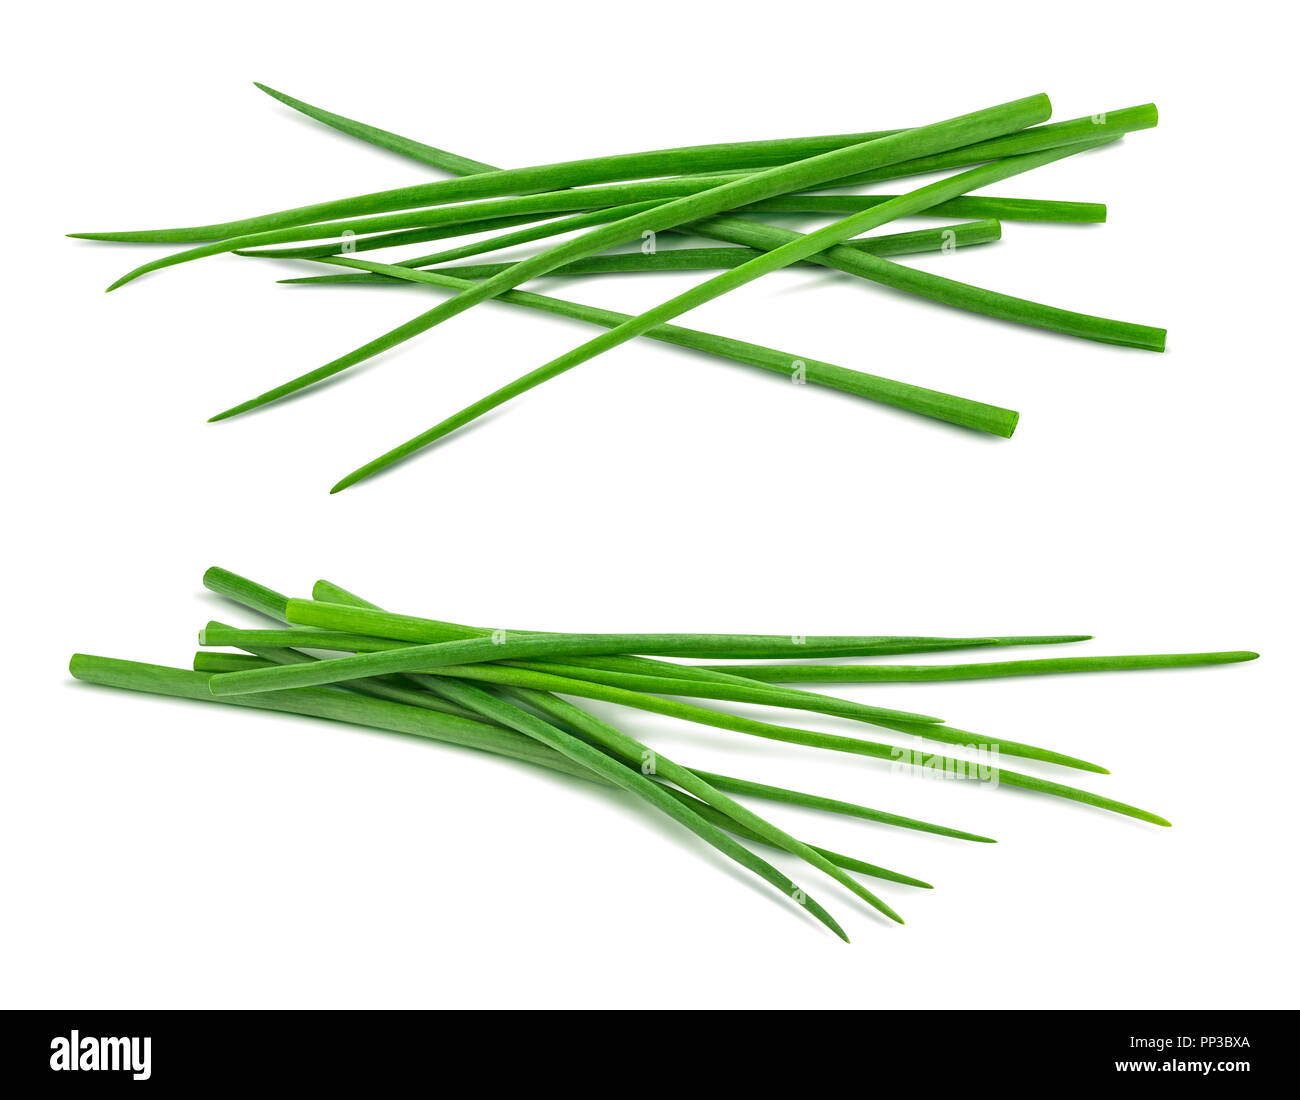 Double scallion spring onion bunch isolated on white background as package design element - Stock Image